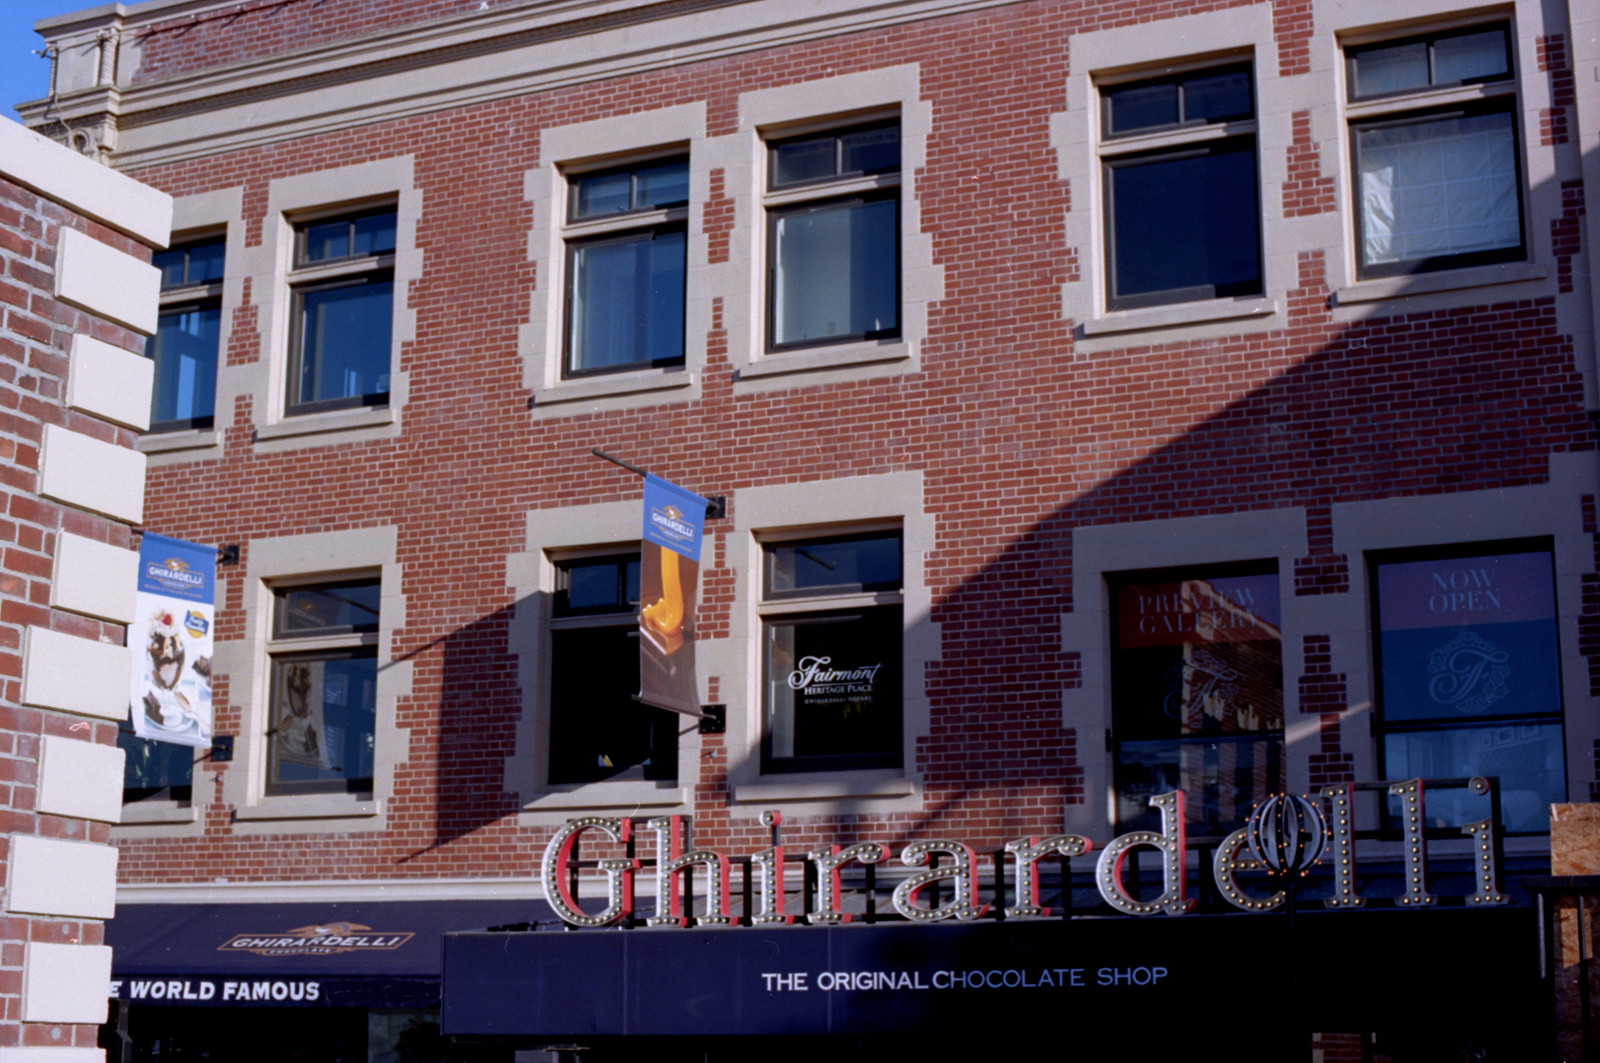 Windows at Ghirardelli Square.